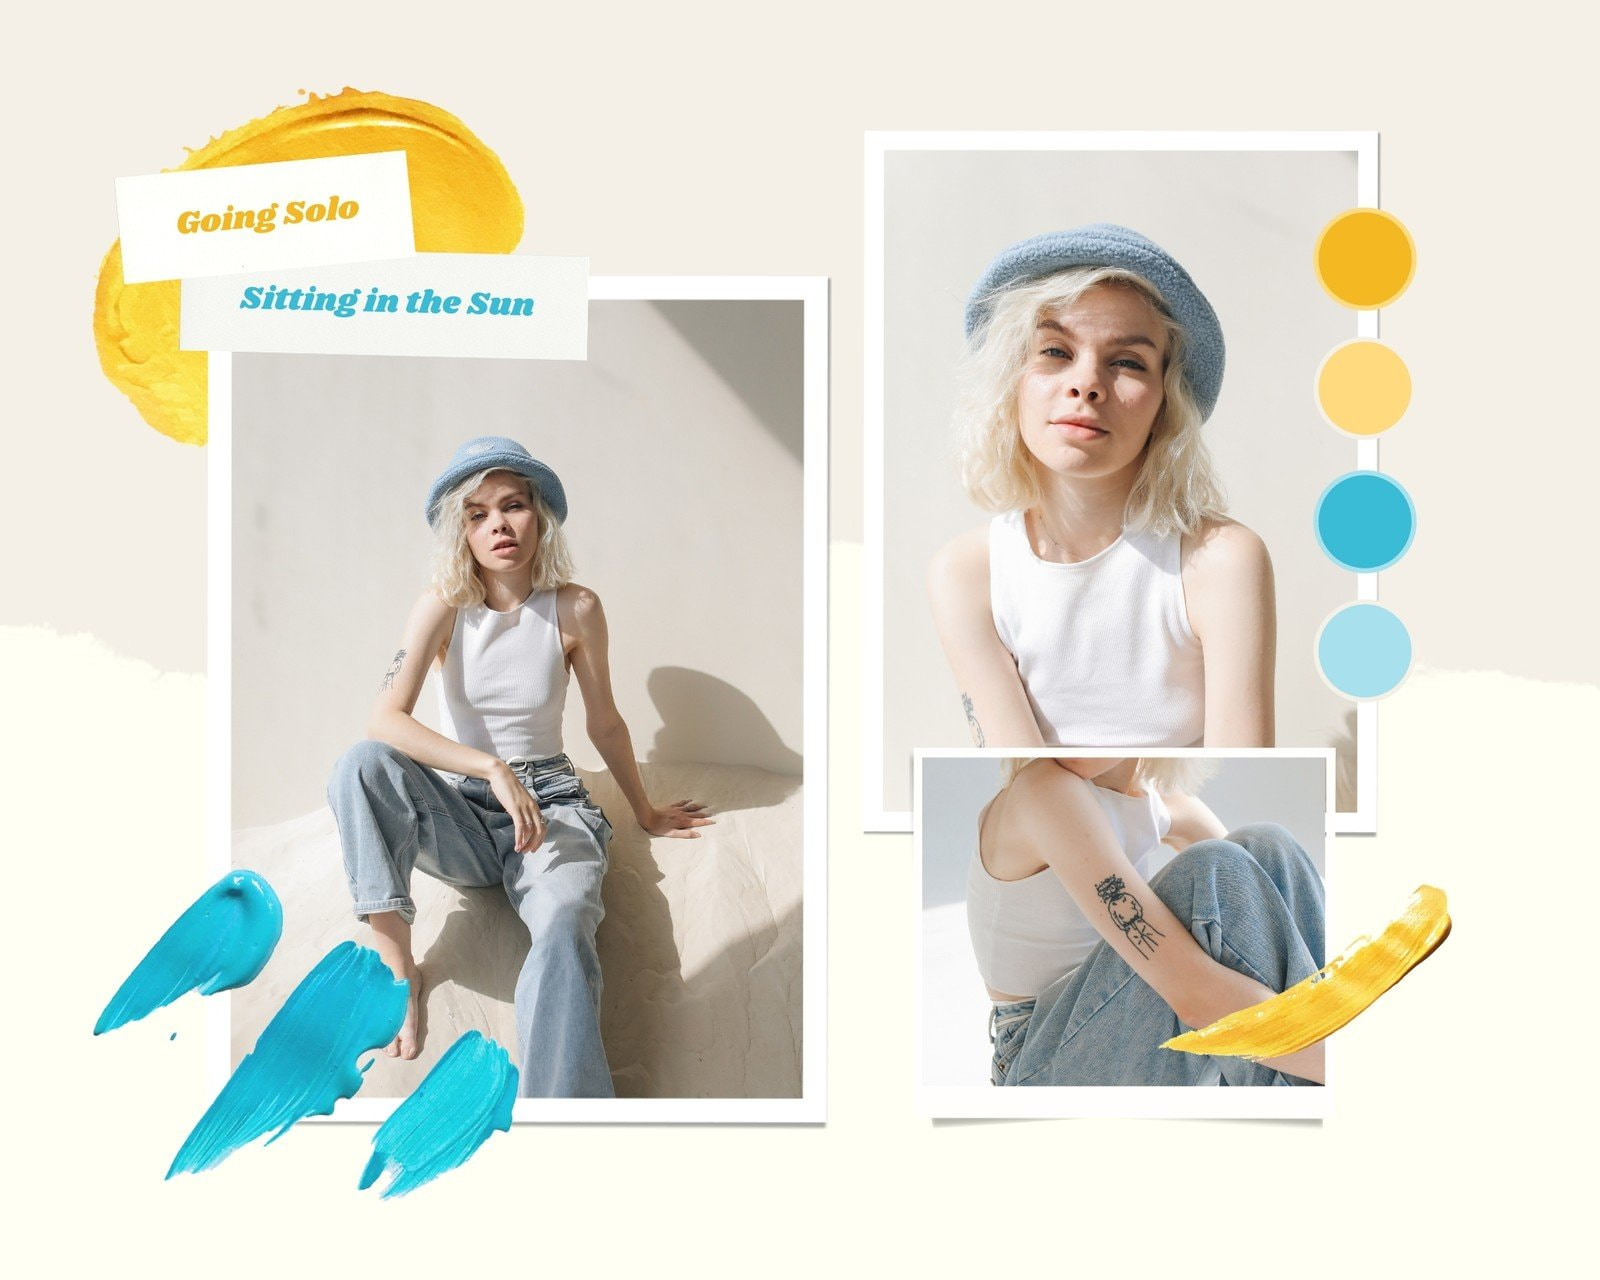 Blue and Yellow Bright and Playful Fashion Moodboard Photo Collage